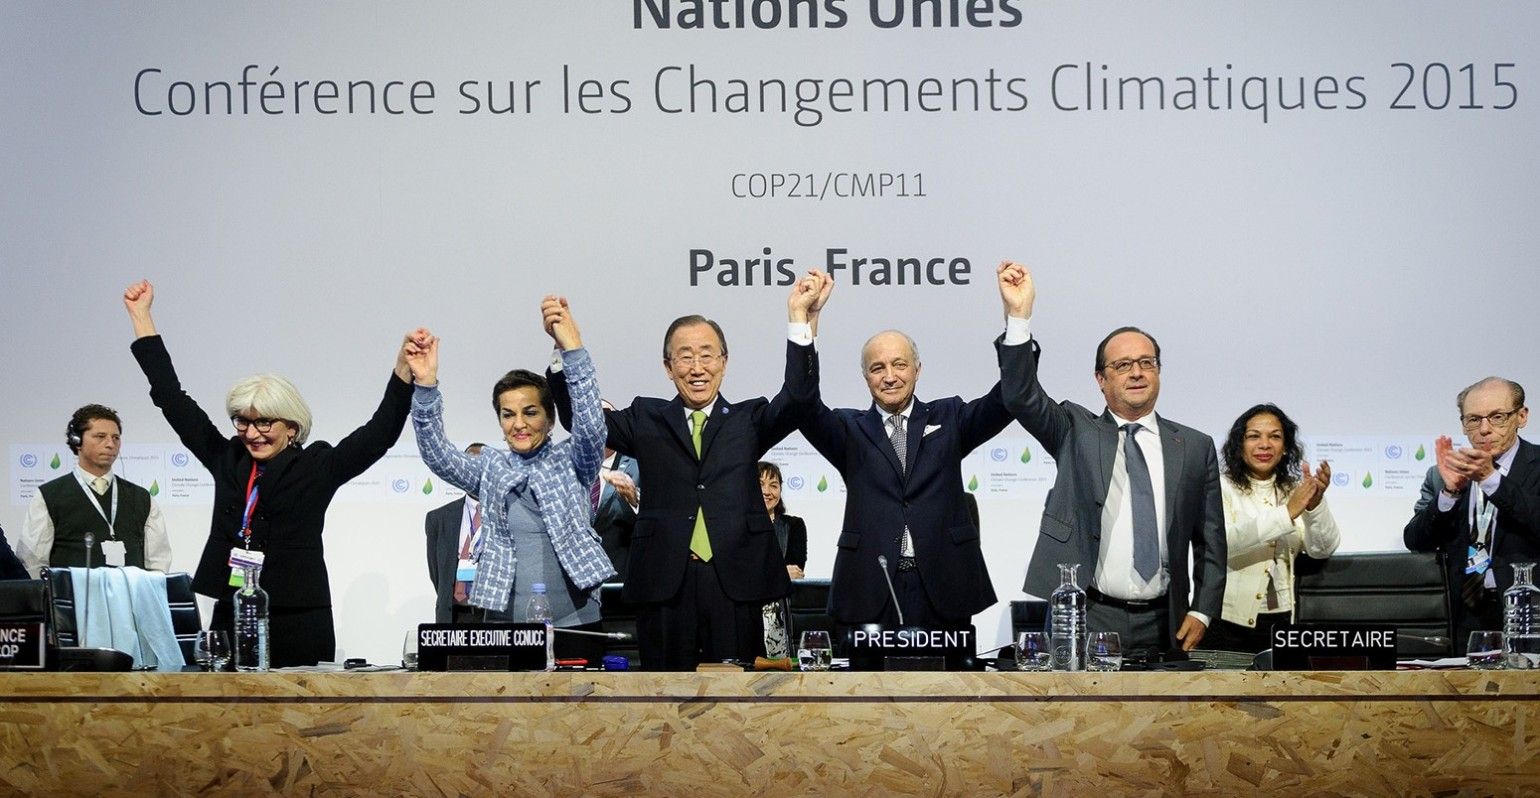 cop21-unfccc-paris-agreement-1550x804.jpg